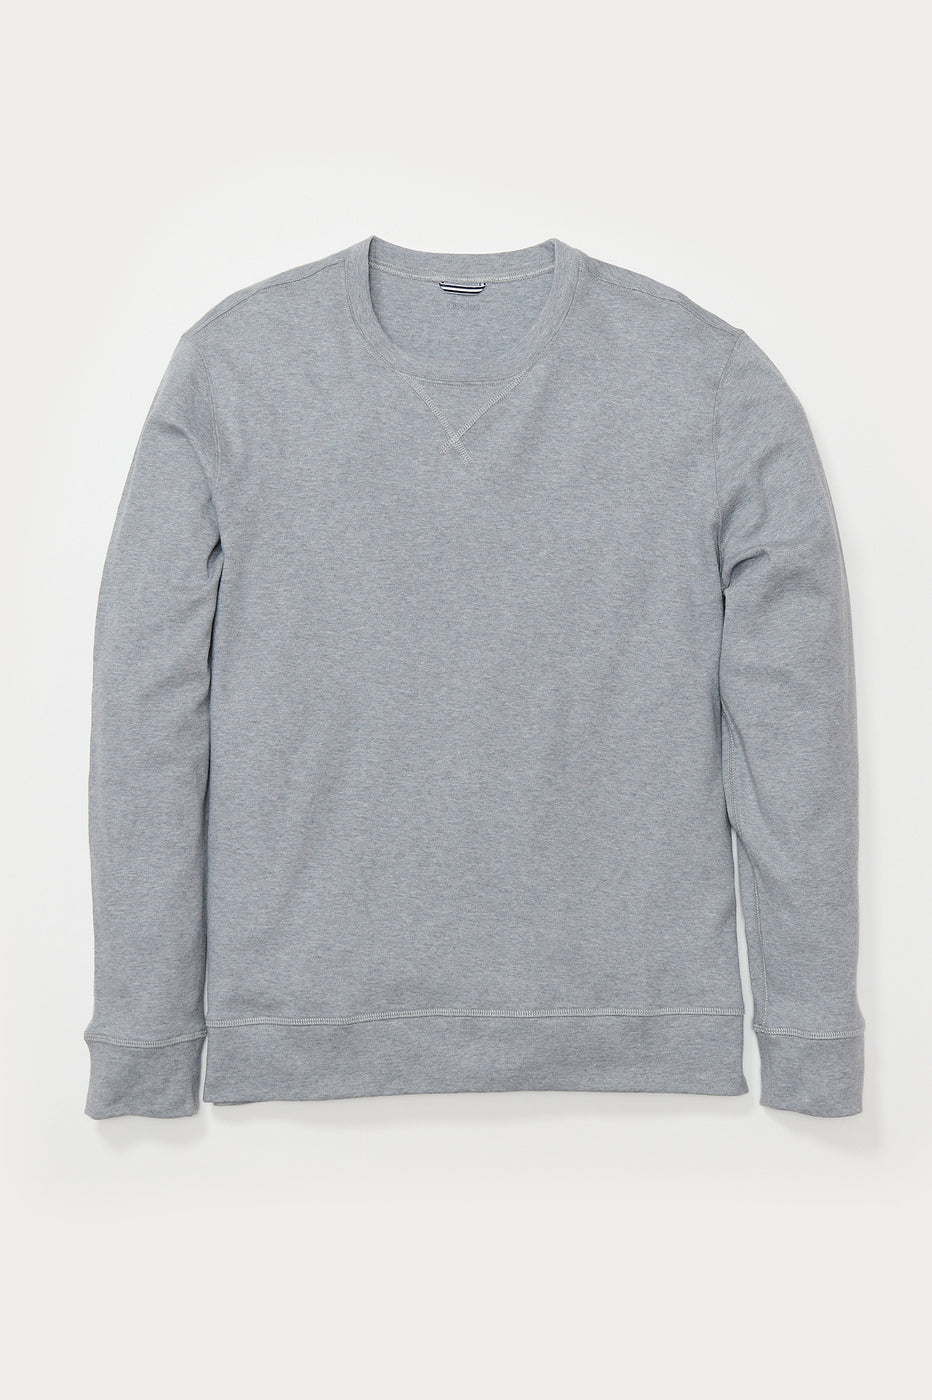 Load image into Gallery viewer, Chackbay Sweatshirt in Grey Heather